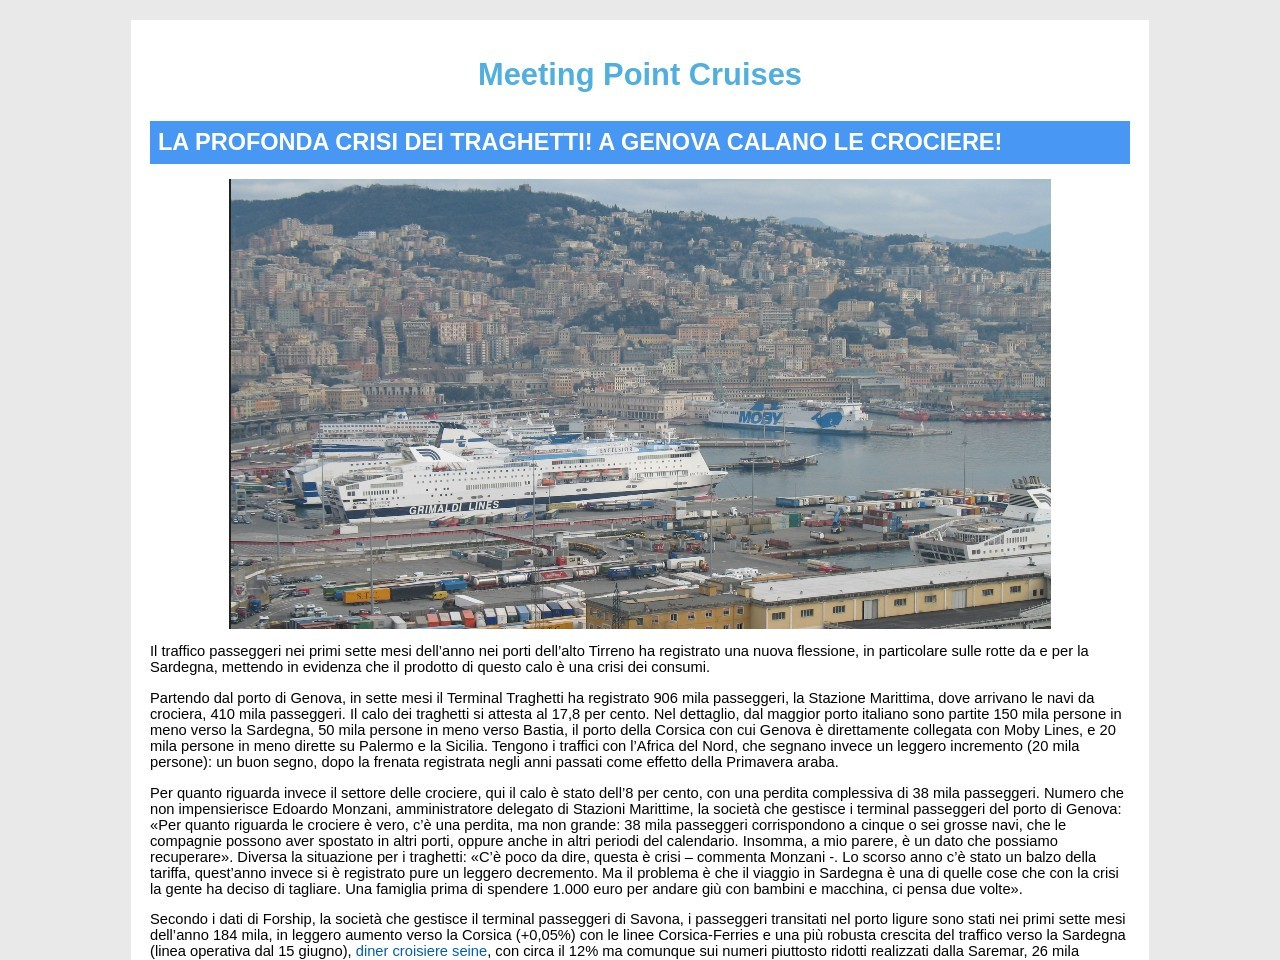 meetingpoint-cruises